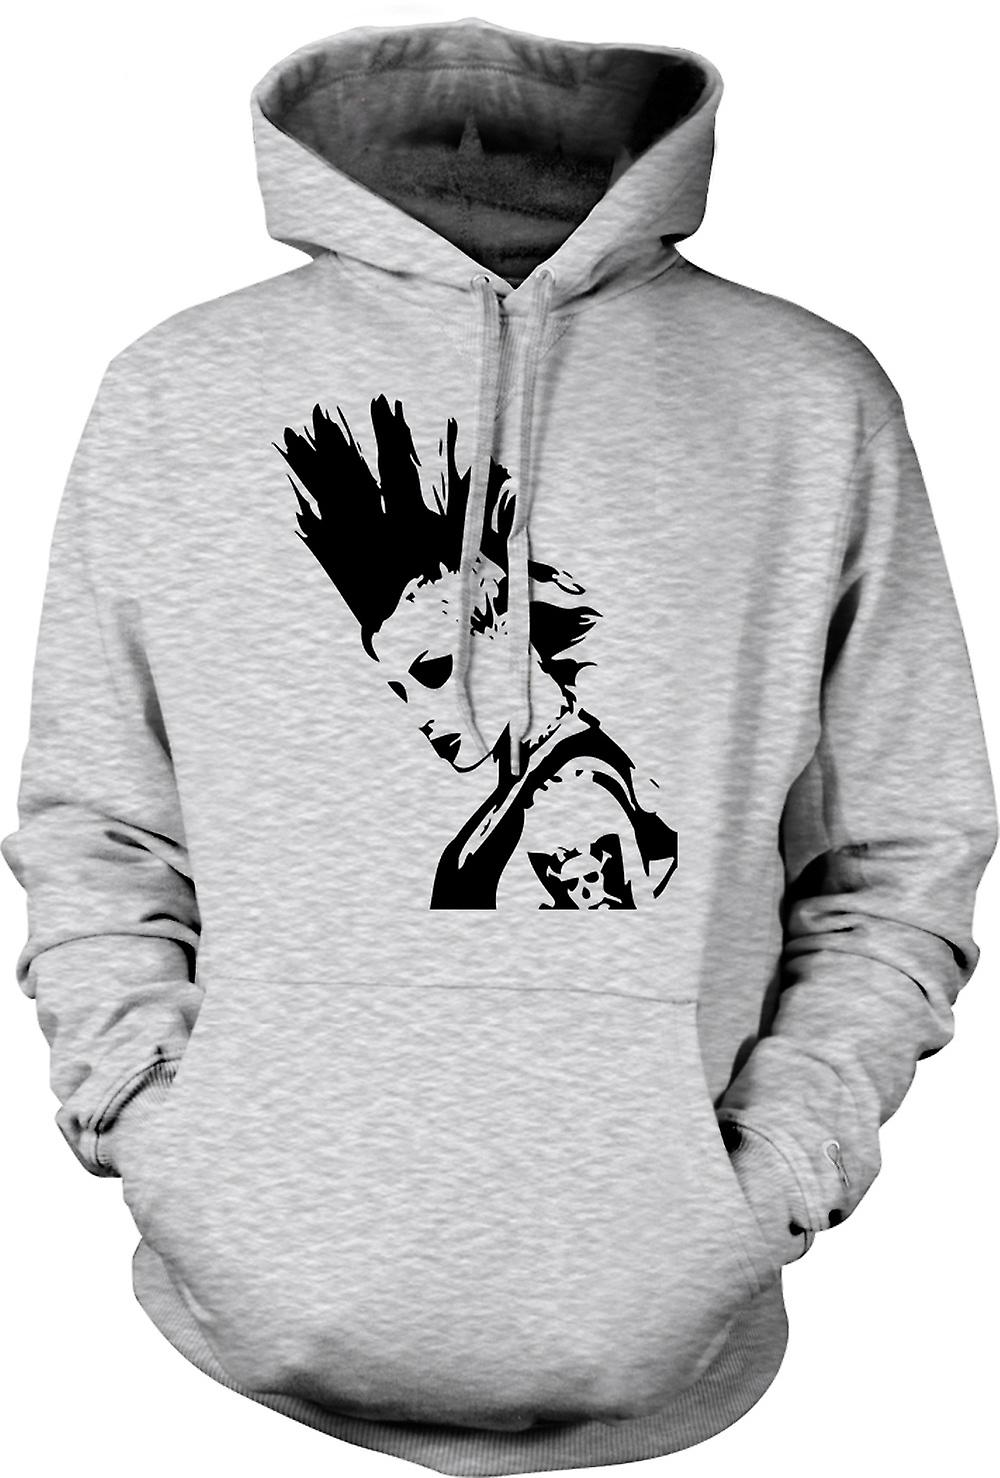 Mens Hoodie - Punk Rocker Mohican Girl - BW - Pop Art